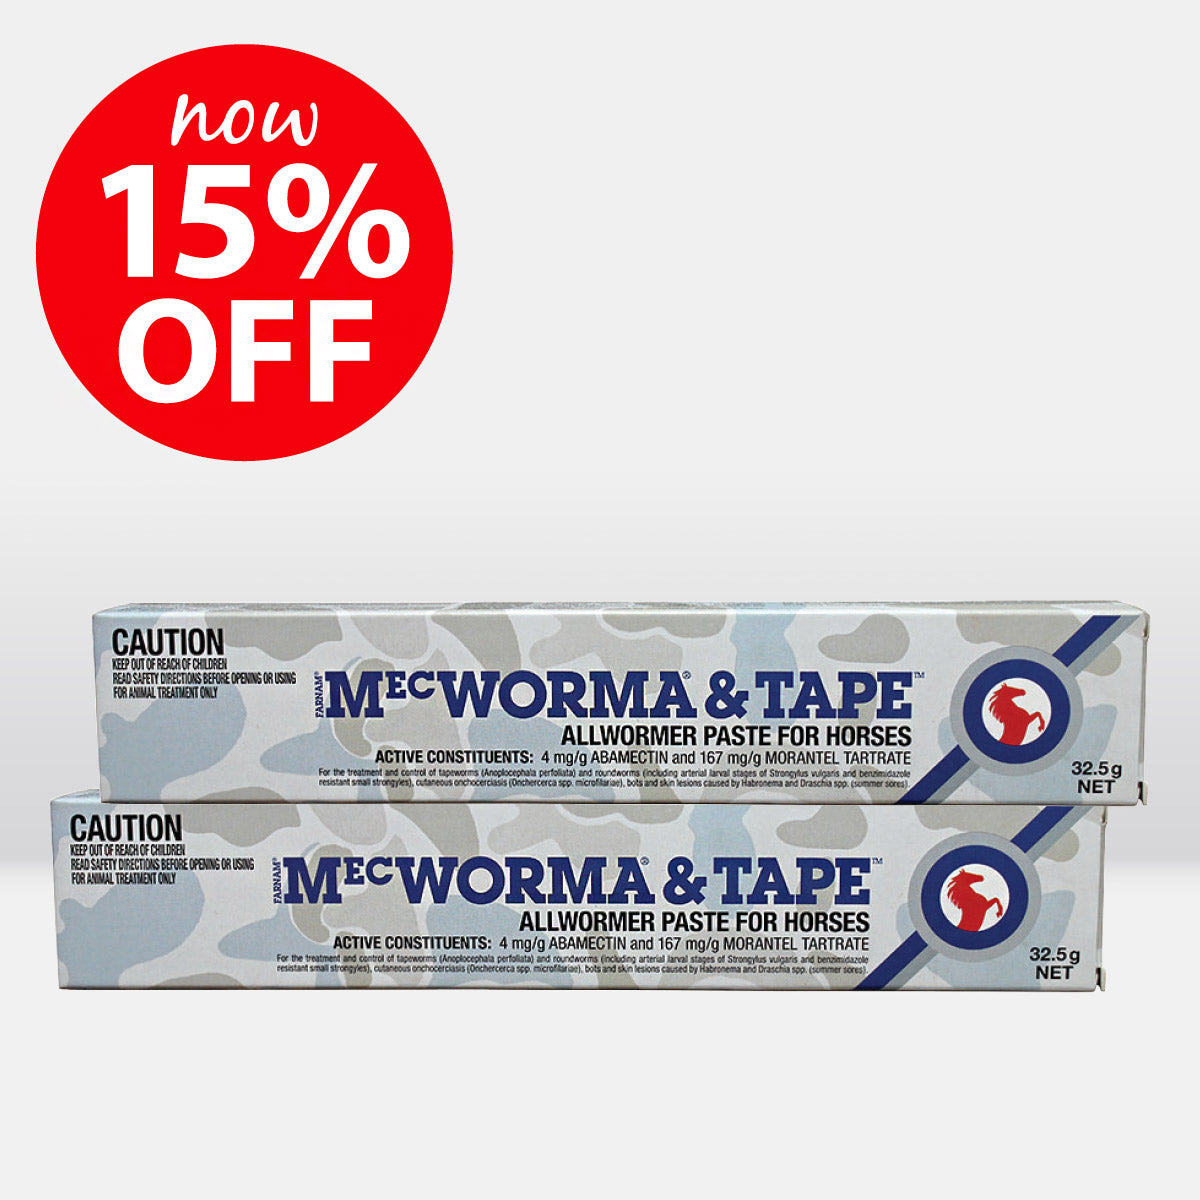 MecWorma & Tape Allwormer Paste for Horses 32.5g ON SALE